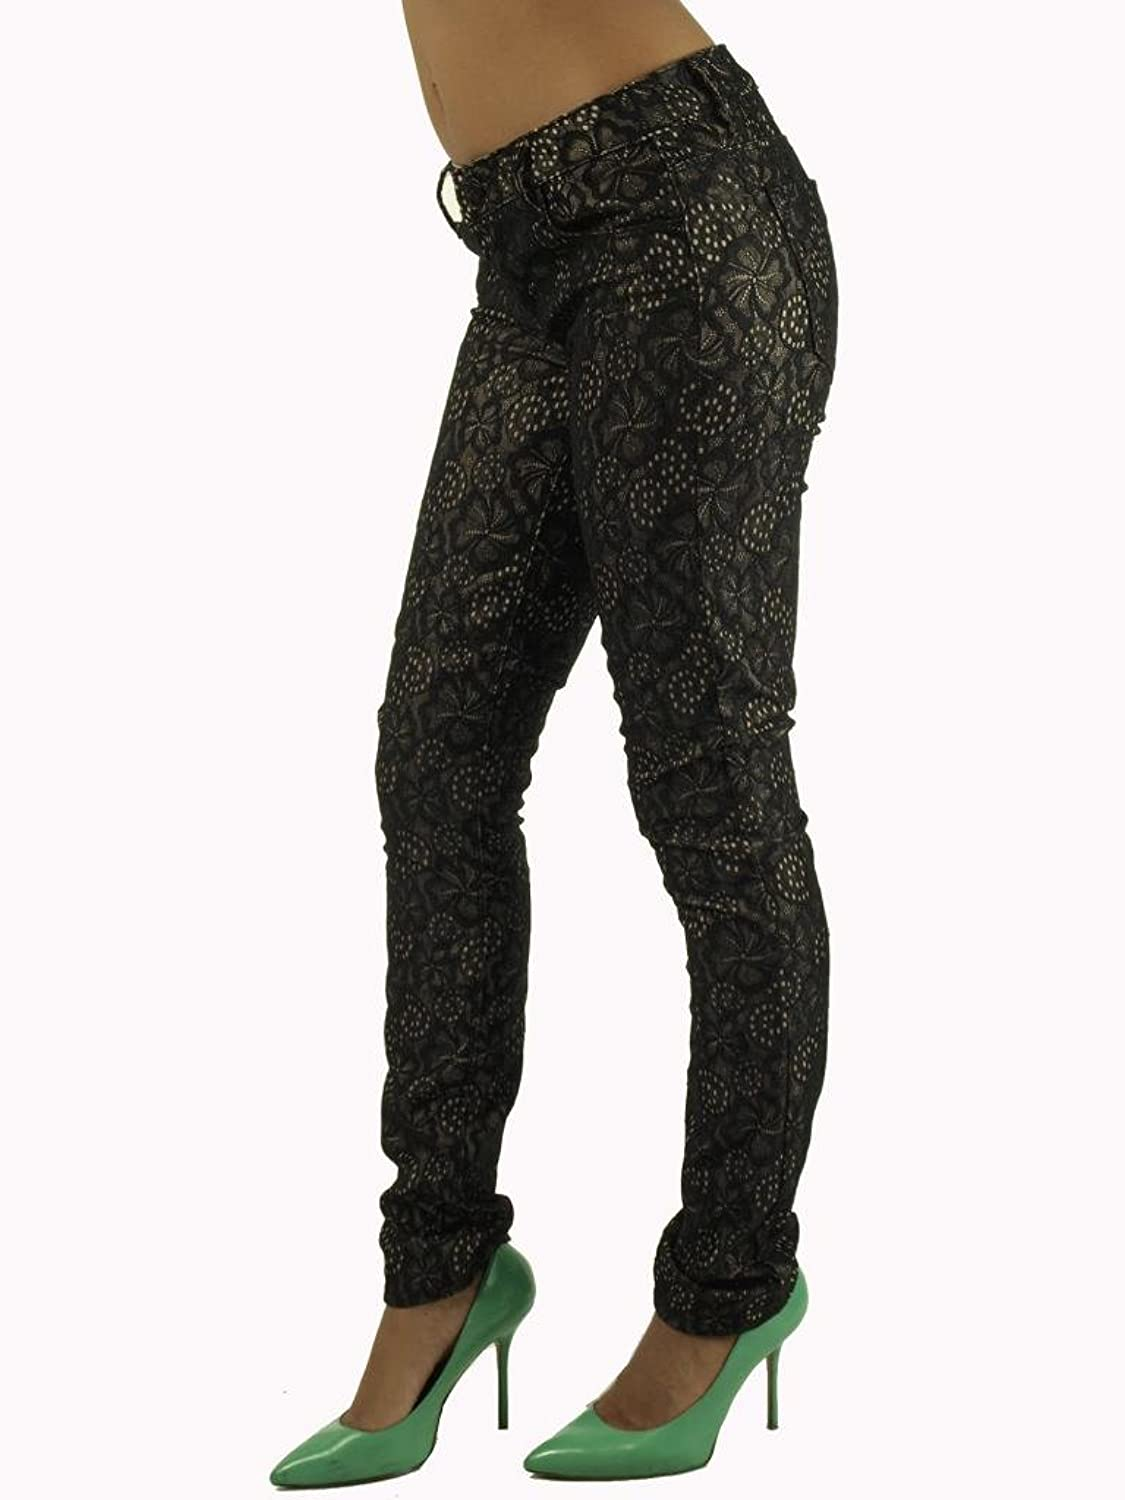 Women's Skinny Fit Floral Lace Pants by Vanilla Star